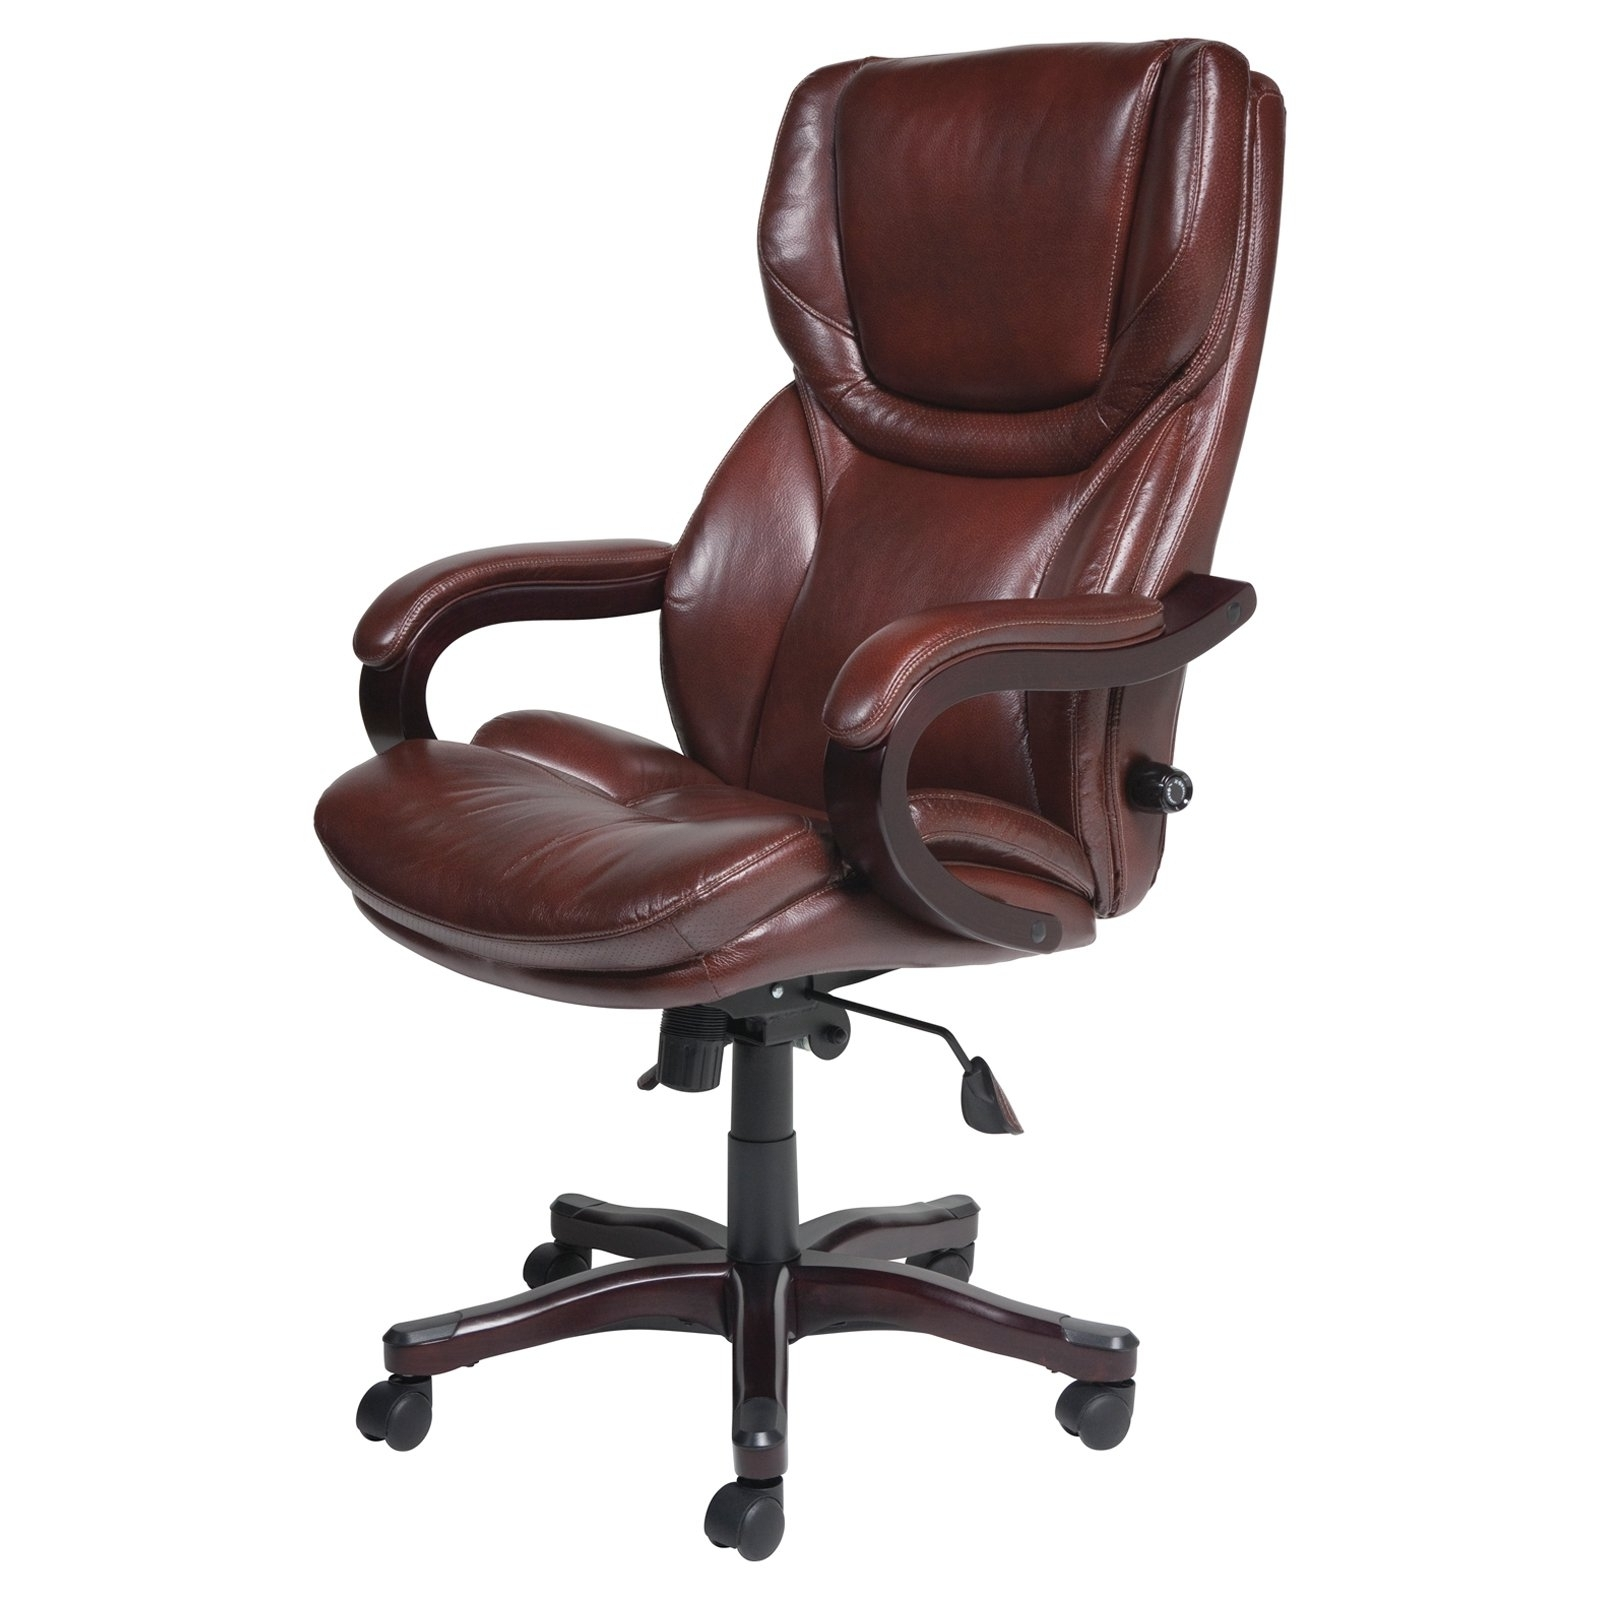 2018 Chair : Ergonomic Black Leather Executive Office Chair Verona Inside Executive Office Chairs (View 1 of 20)